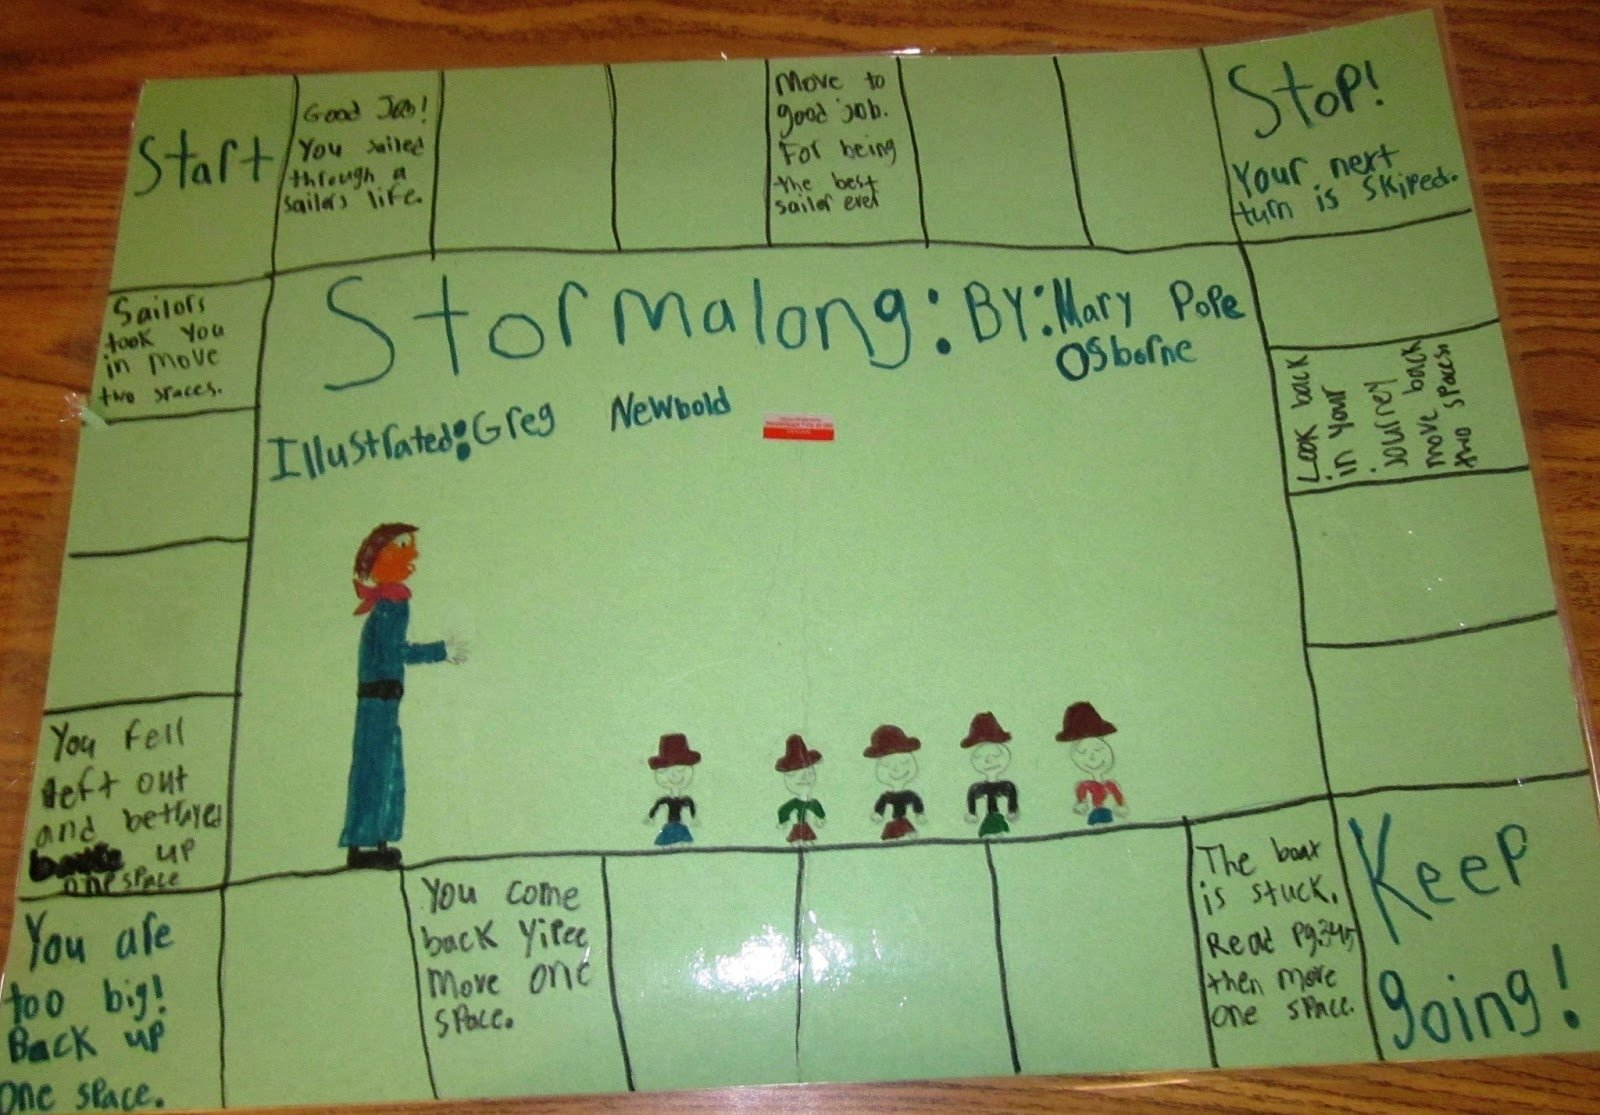 10 Famous Board Game Ideas For School Projects board game diary of a public school teacher 2020